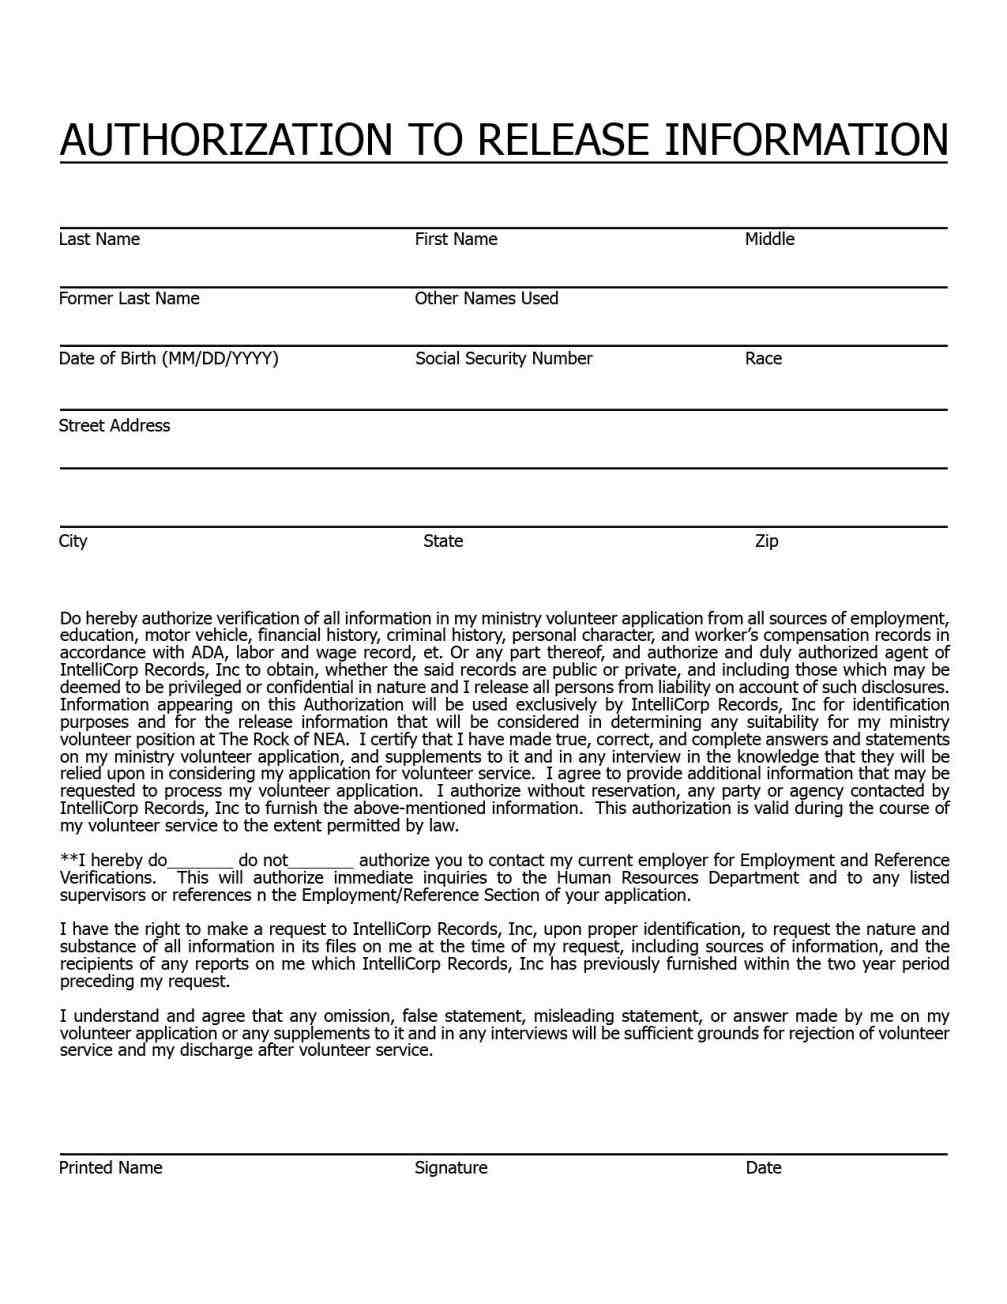 5 background check forms  template invitations